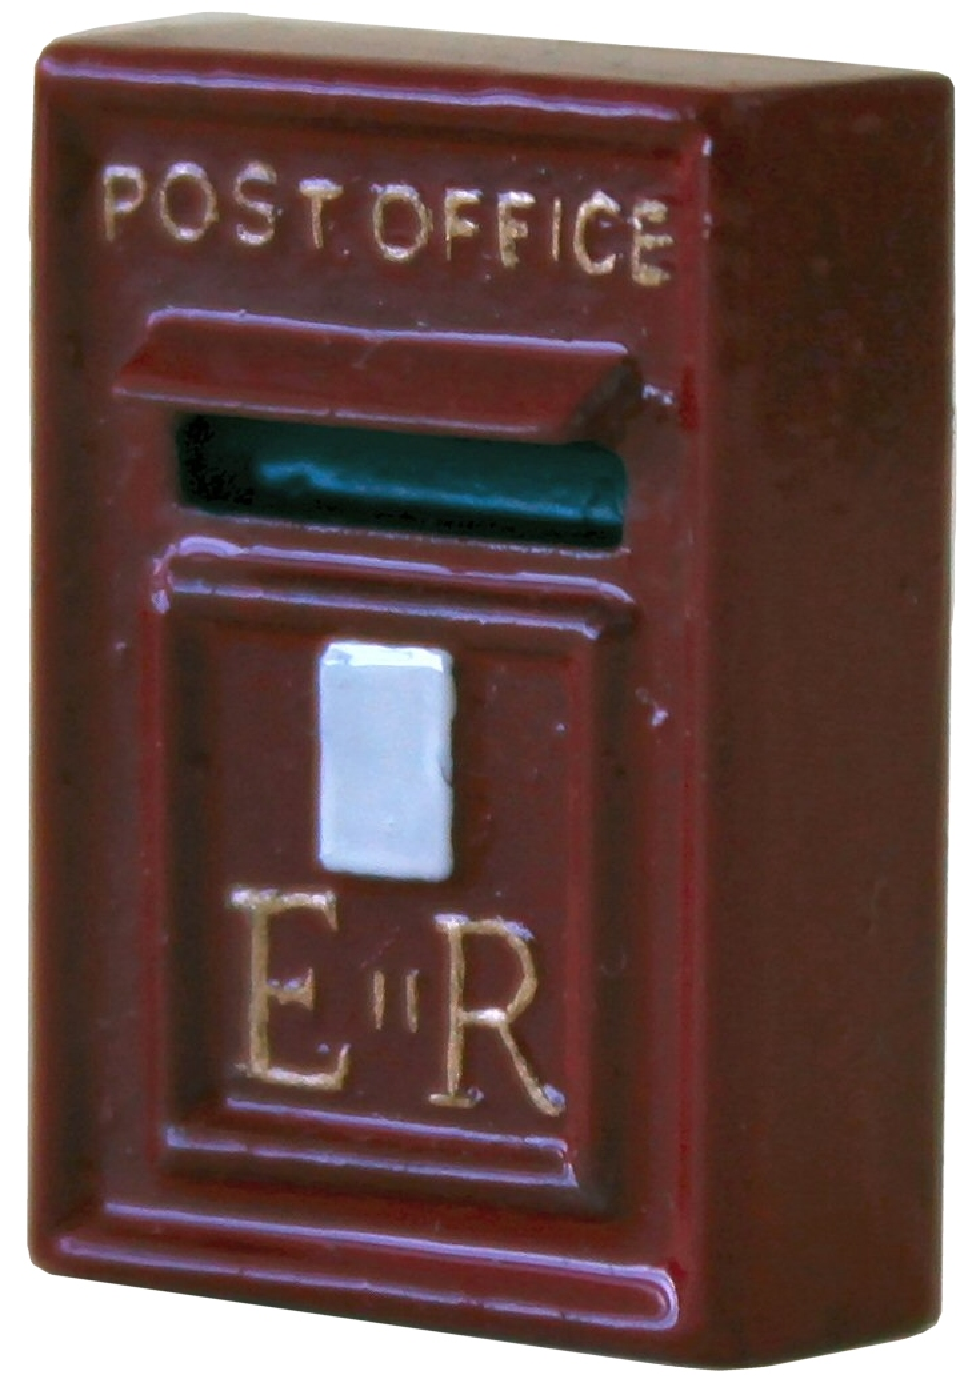 Cast postbox kit